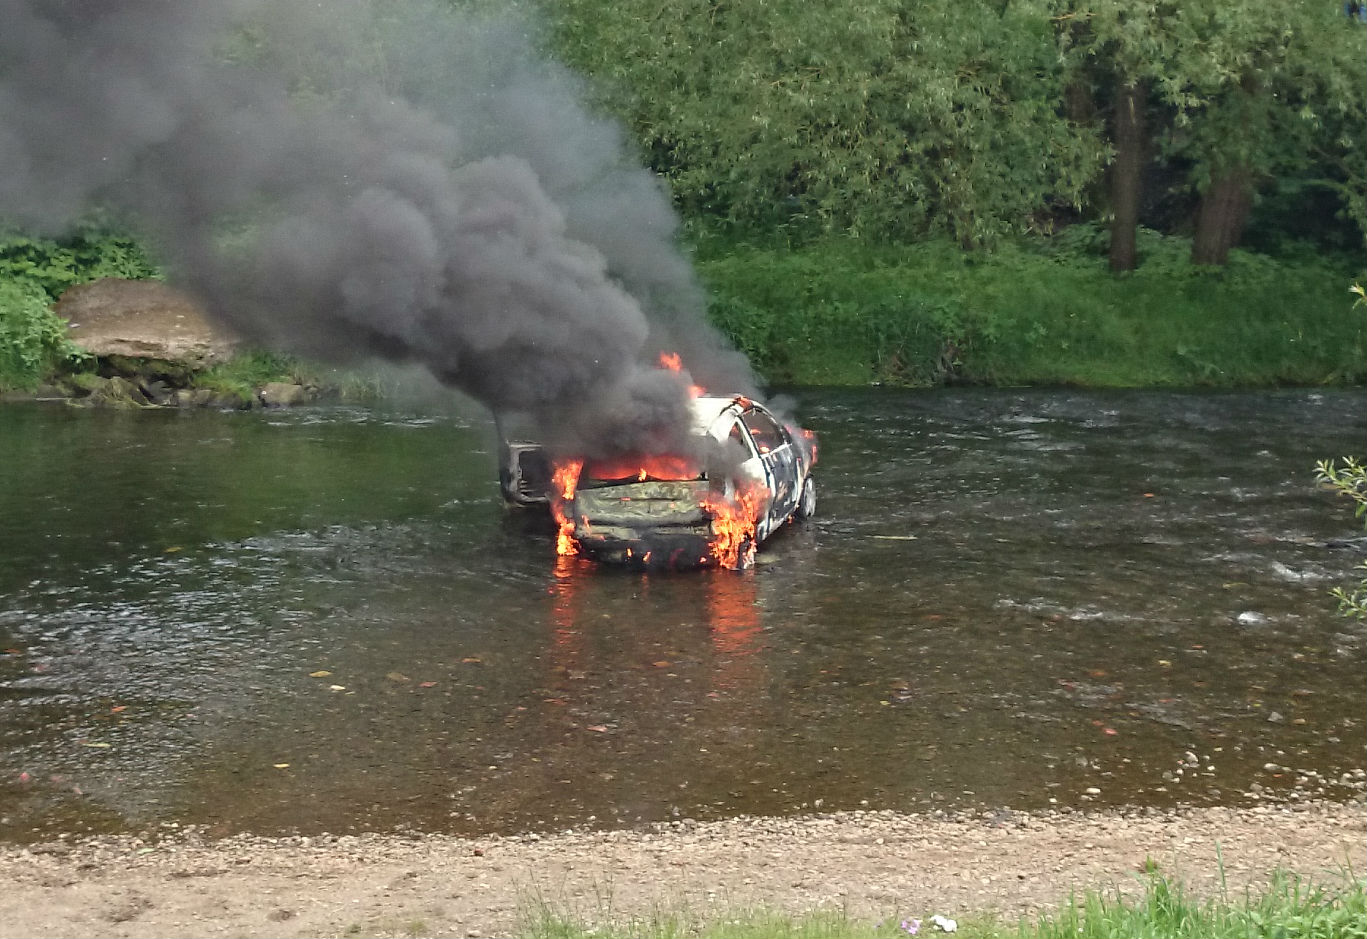 The car on fire in the River Roch